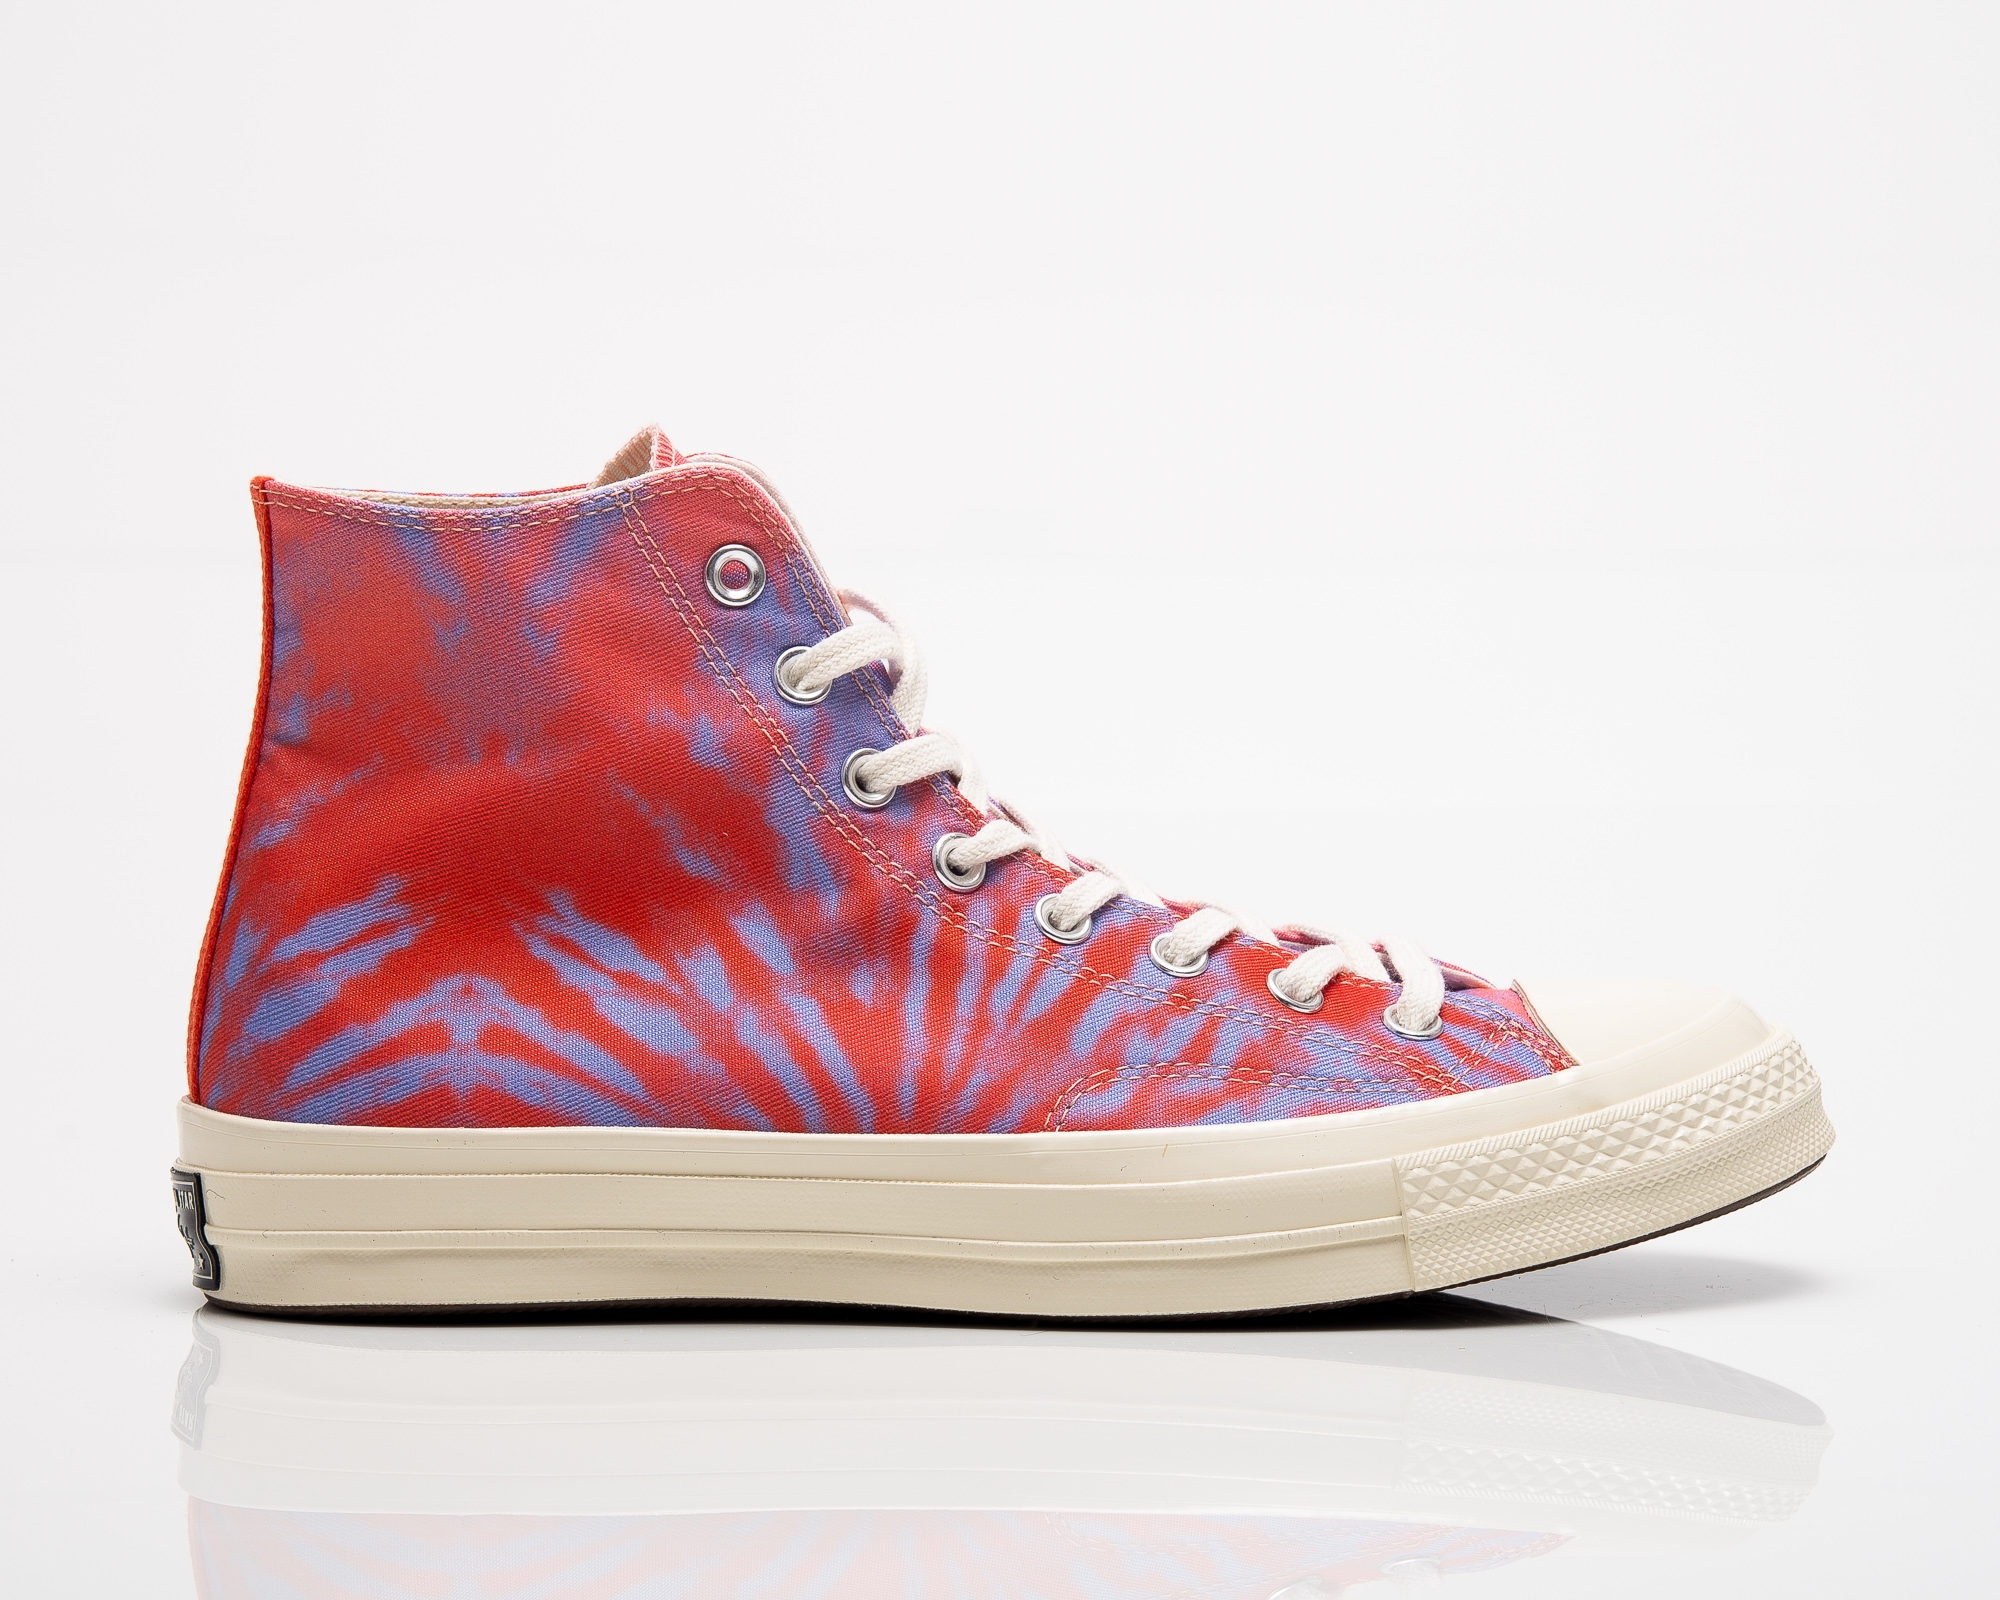 ba249e26903d Converse All-Star Chuck Taylor  70 Tie Dye Hi - Shoes Casual ...